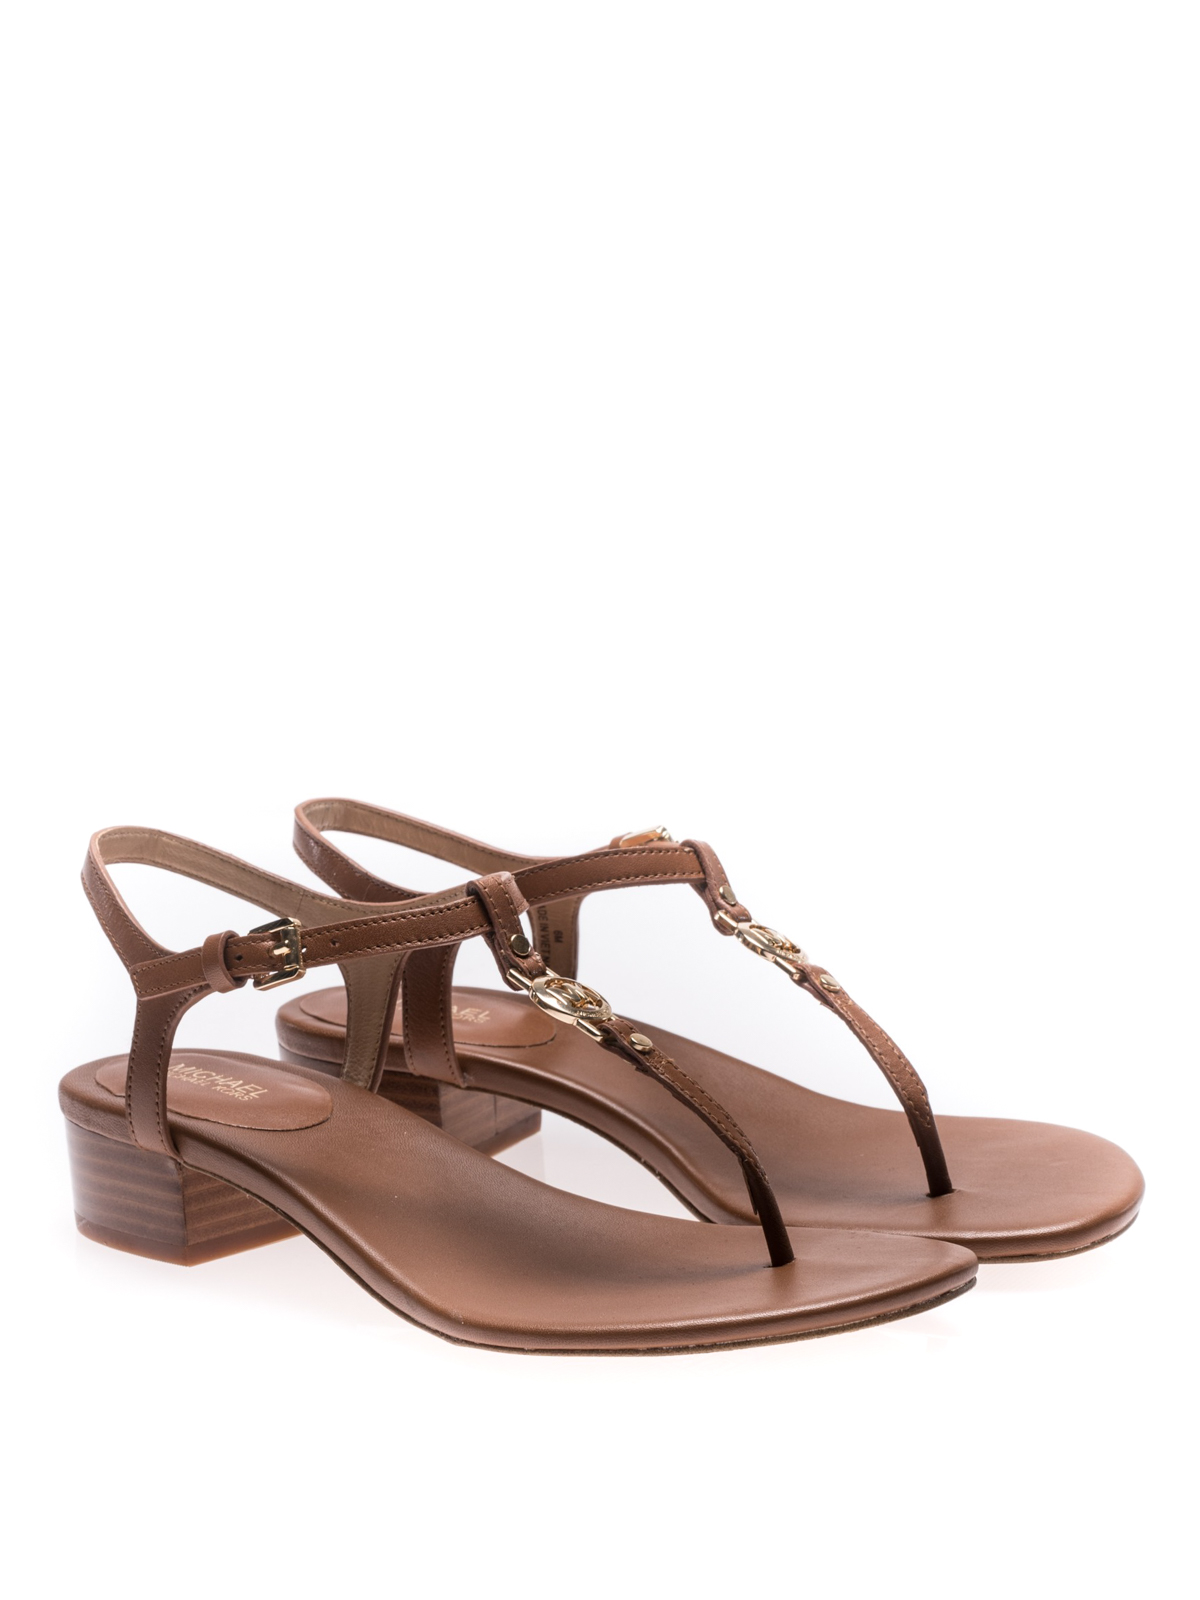 Michael Kors - Cayla Mid brown leather